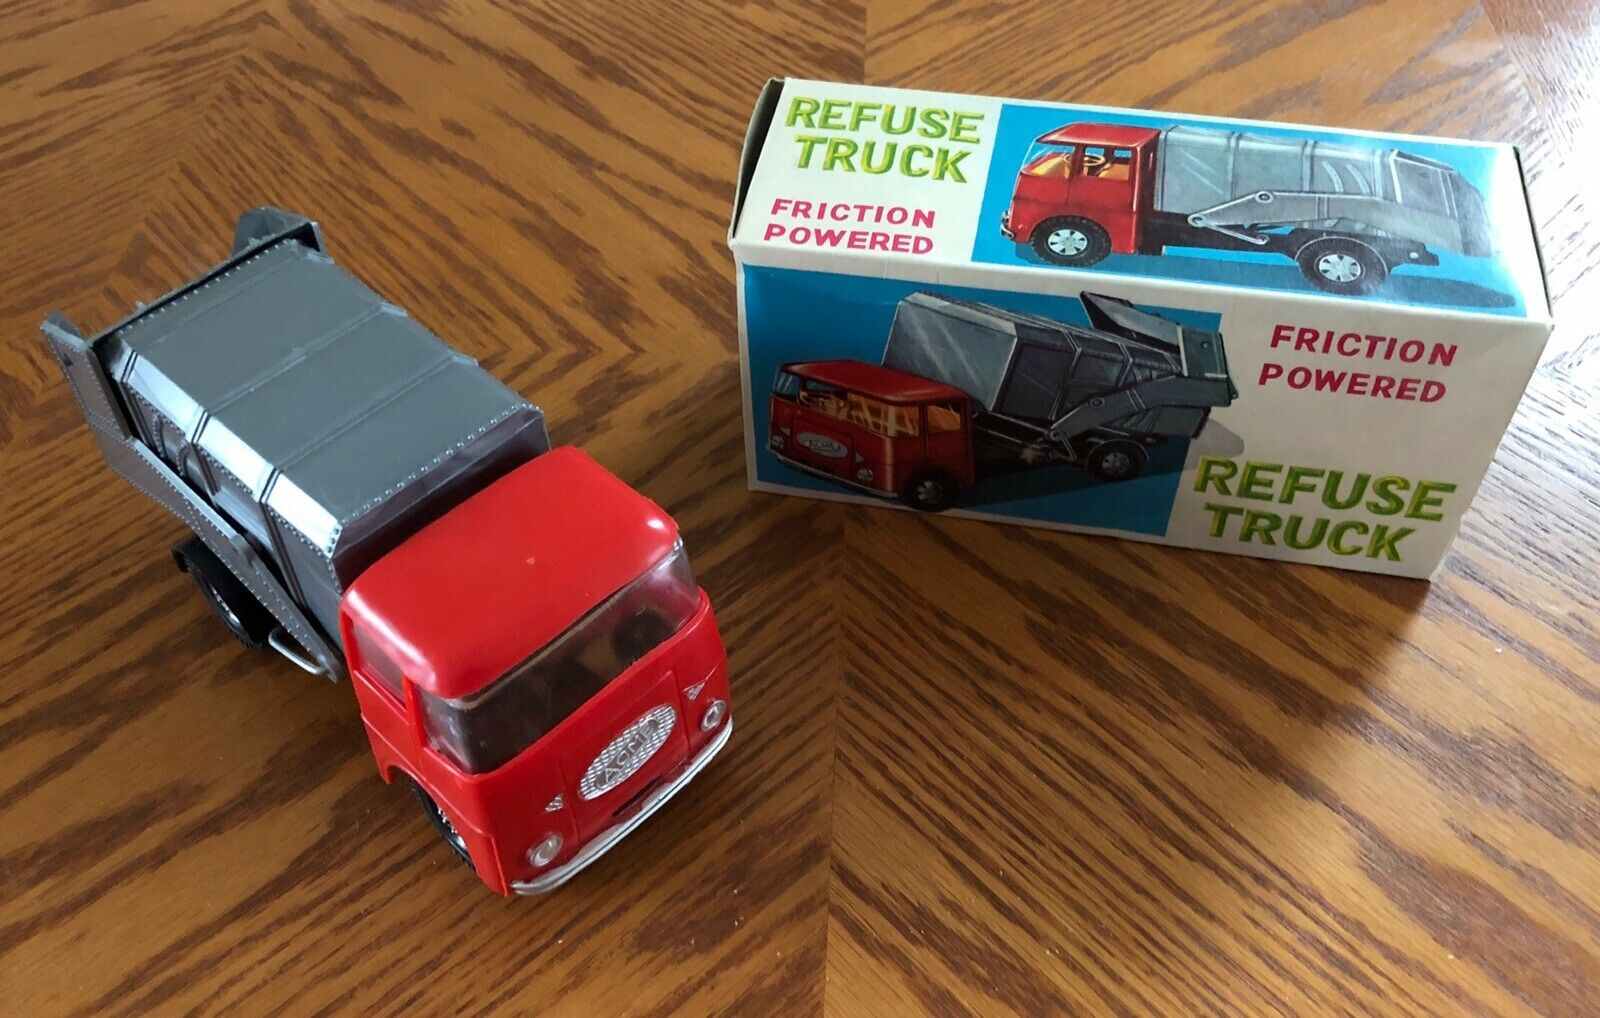 New in Box Vintage ACME (USA) plastique Friction Power refusent (Déchets déchets Trash) camion